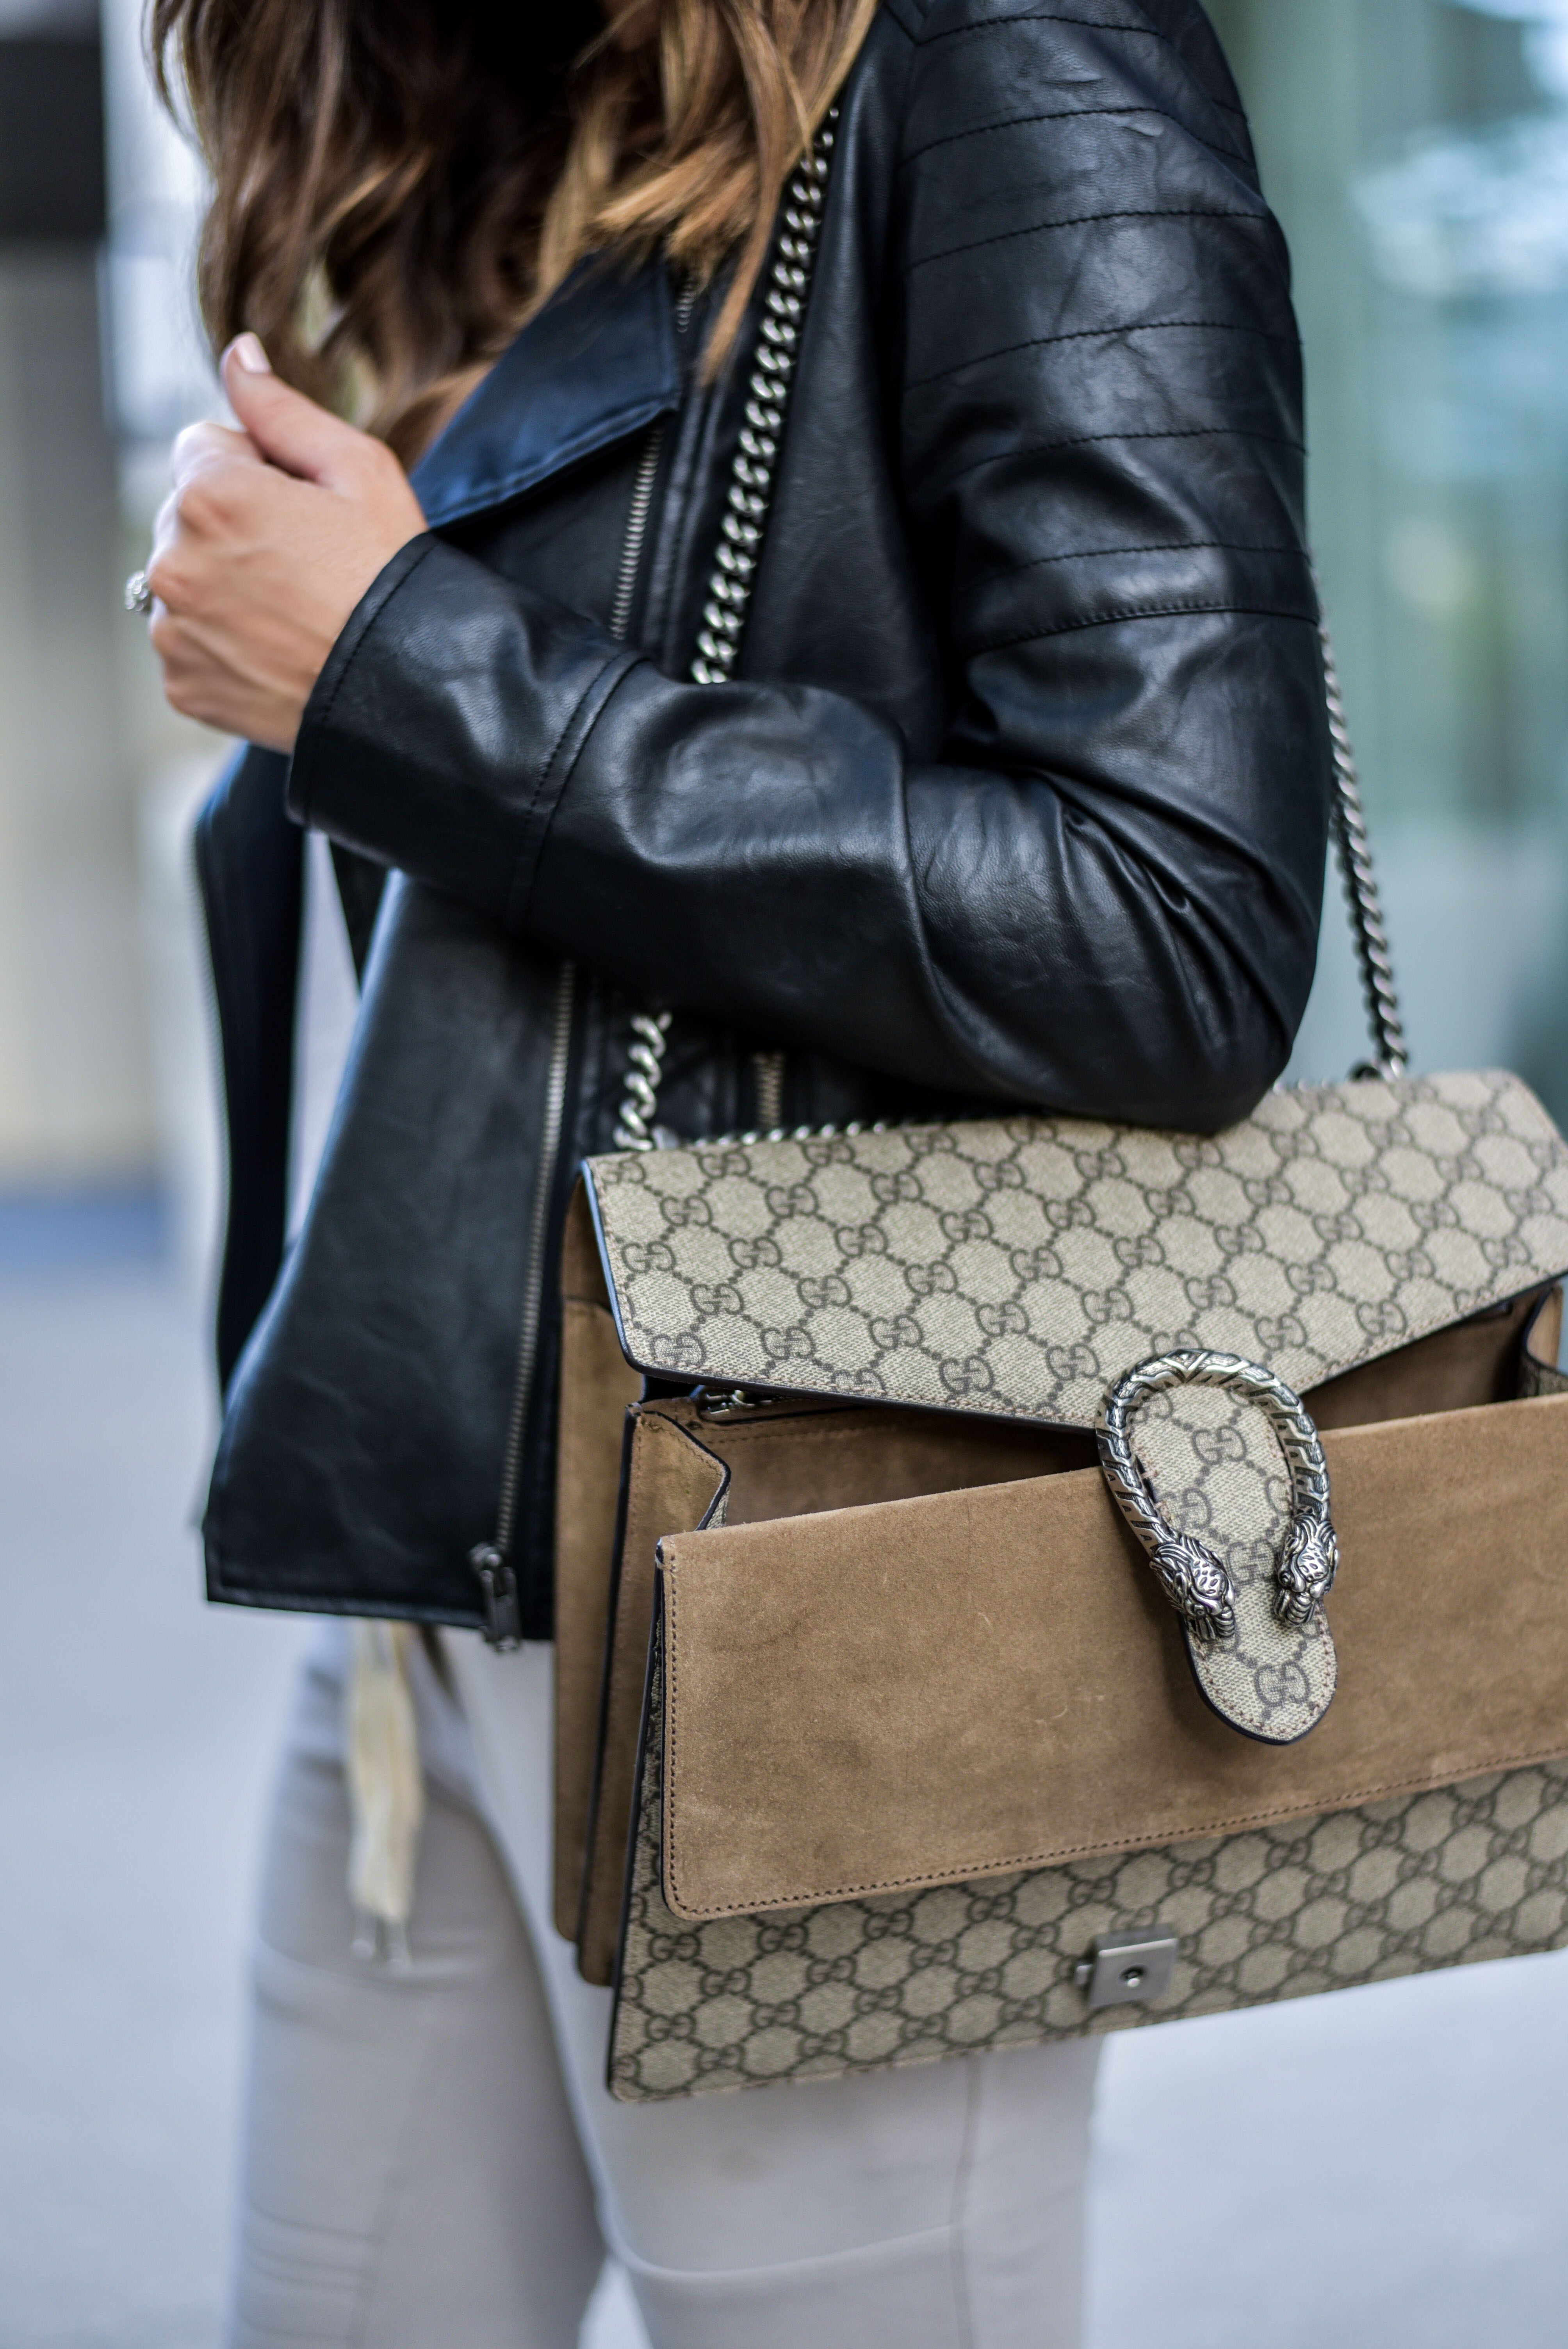 669e0c838719c6 Gucci Dionysus Purse Blog | Stanford Center for Opportunity Policy ...